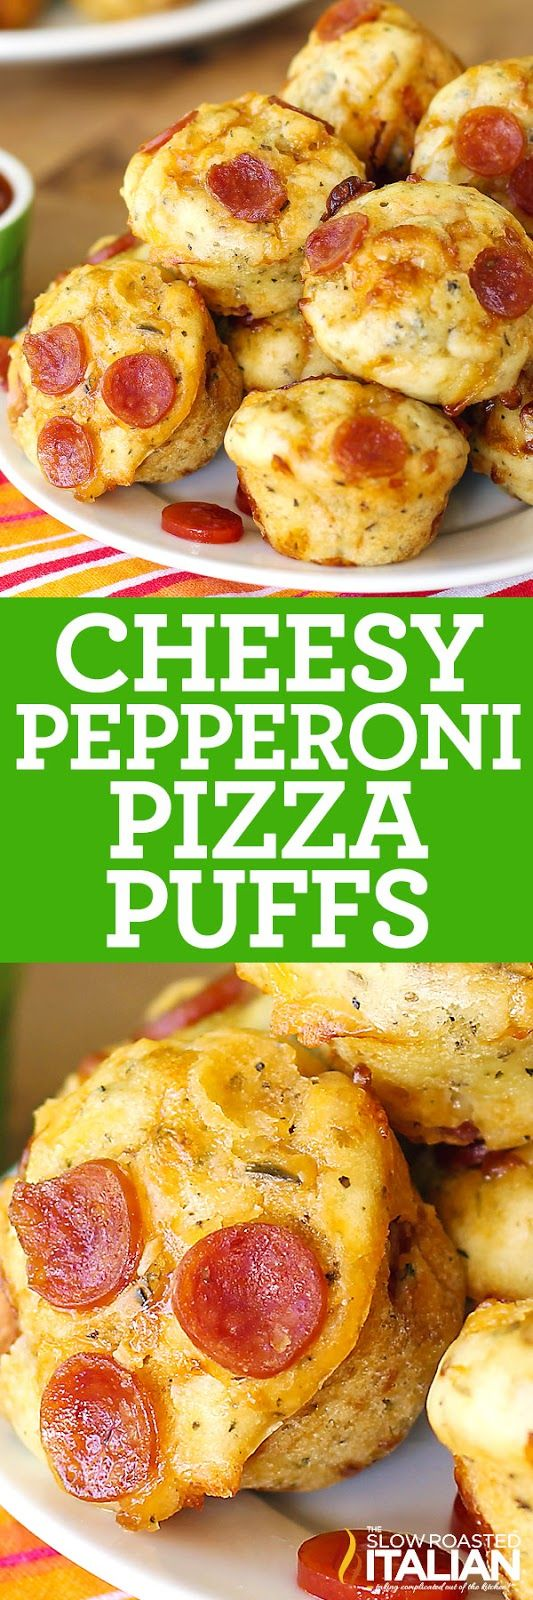 Bite Size Cheesy Pepperoni Pizza Puffs in 30 Minutes are just like your favorite pizza in bite size!